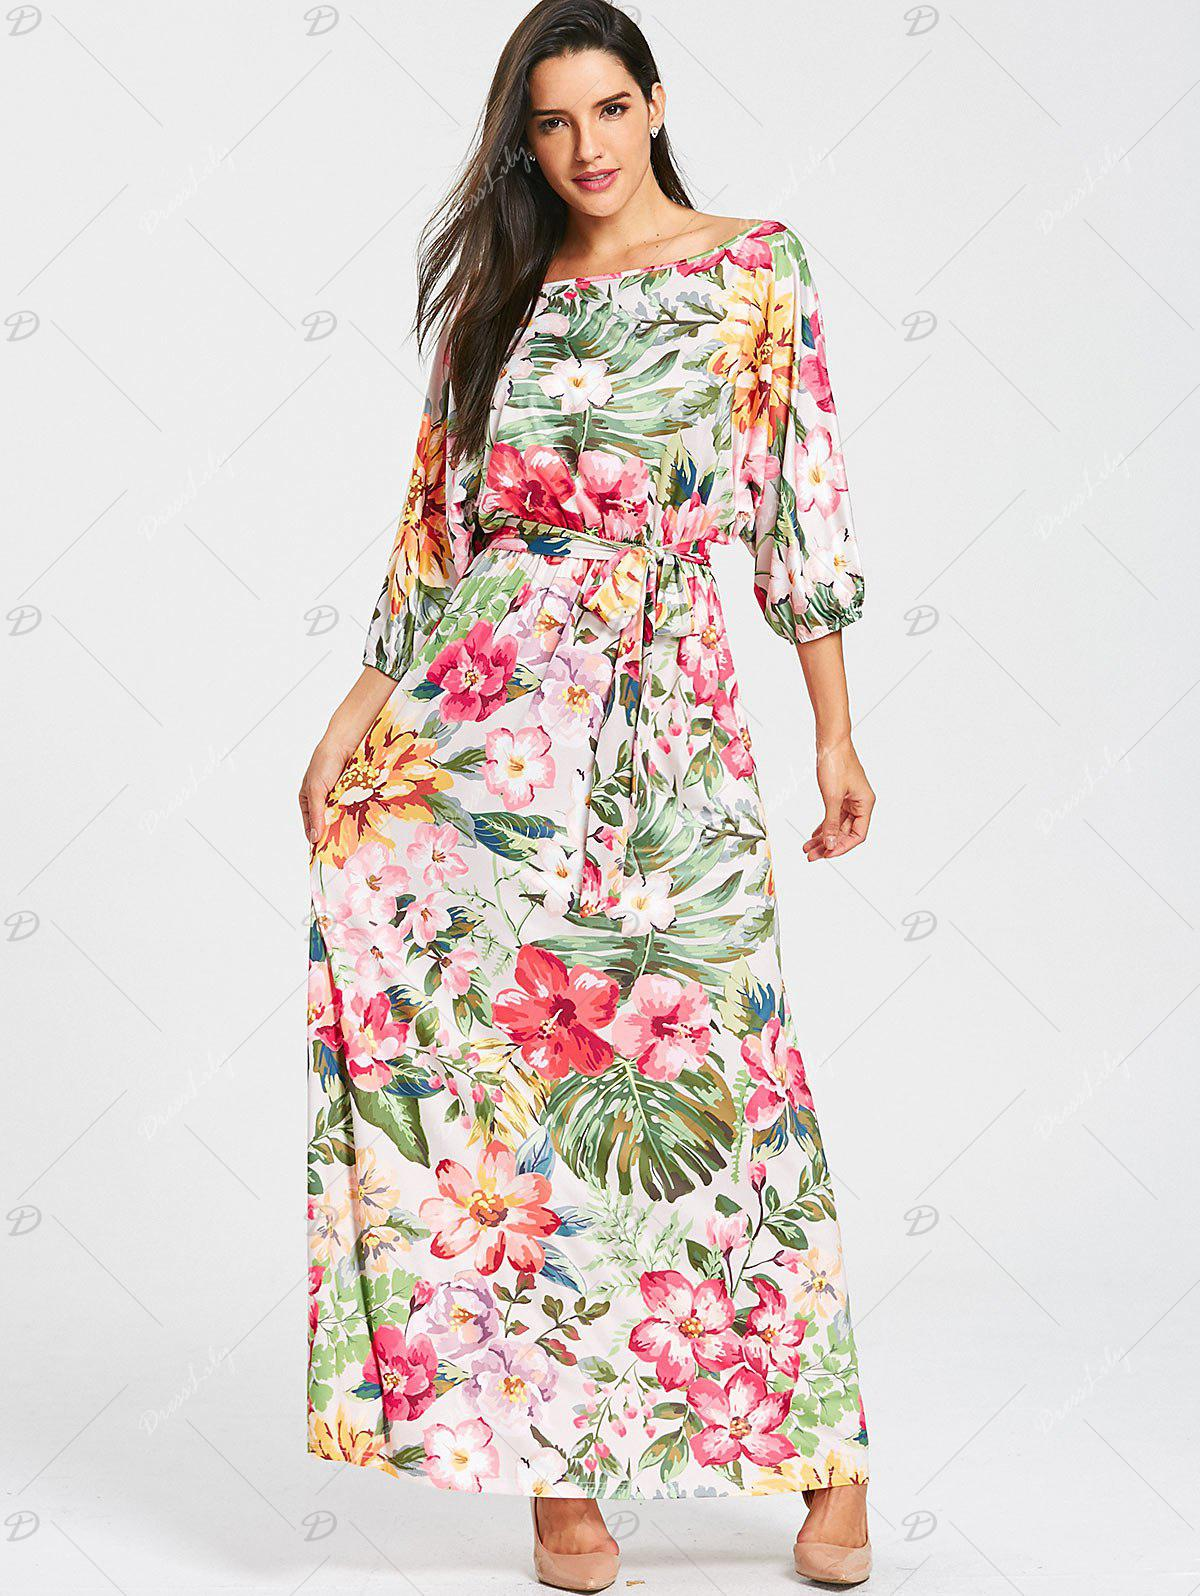 Belted Floral Print Batwing Sleeve Maxi Dress - YELLOW / GREEN 2XL